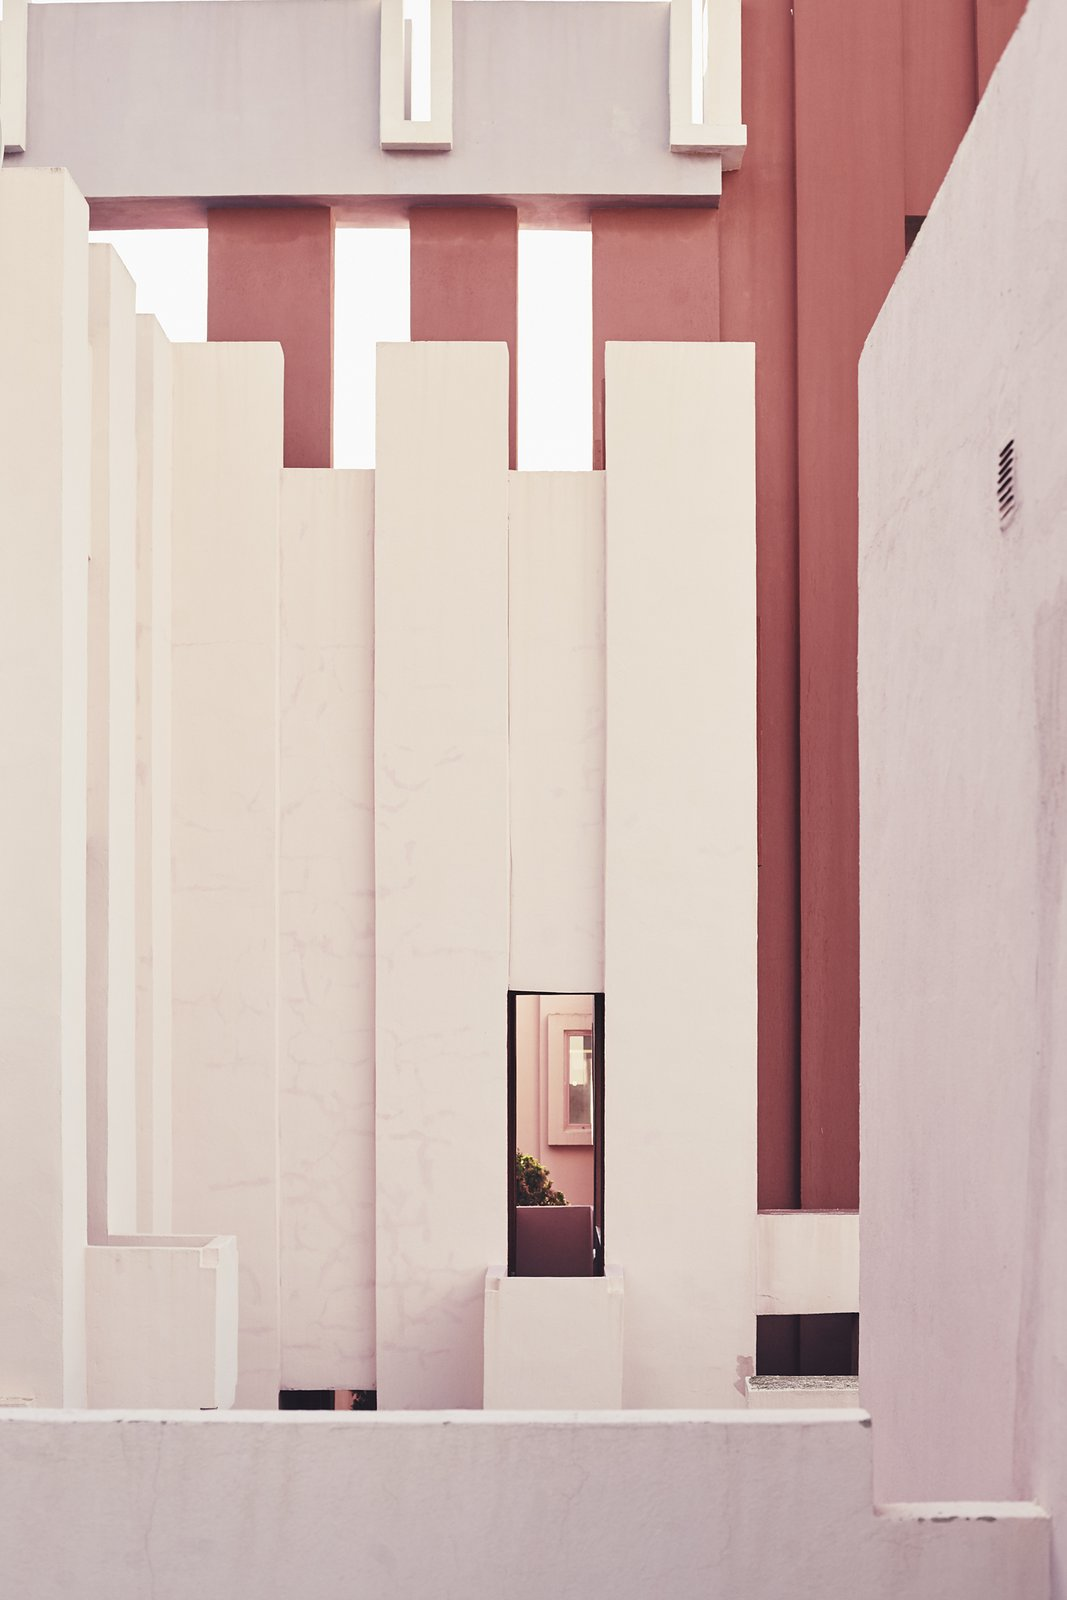 La Muralla Roja apartment complex by Ricardo Bofill - photo by Nacho Alegre.jpg